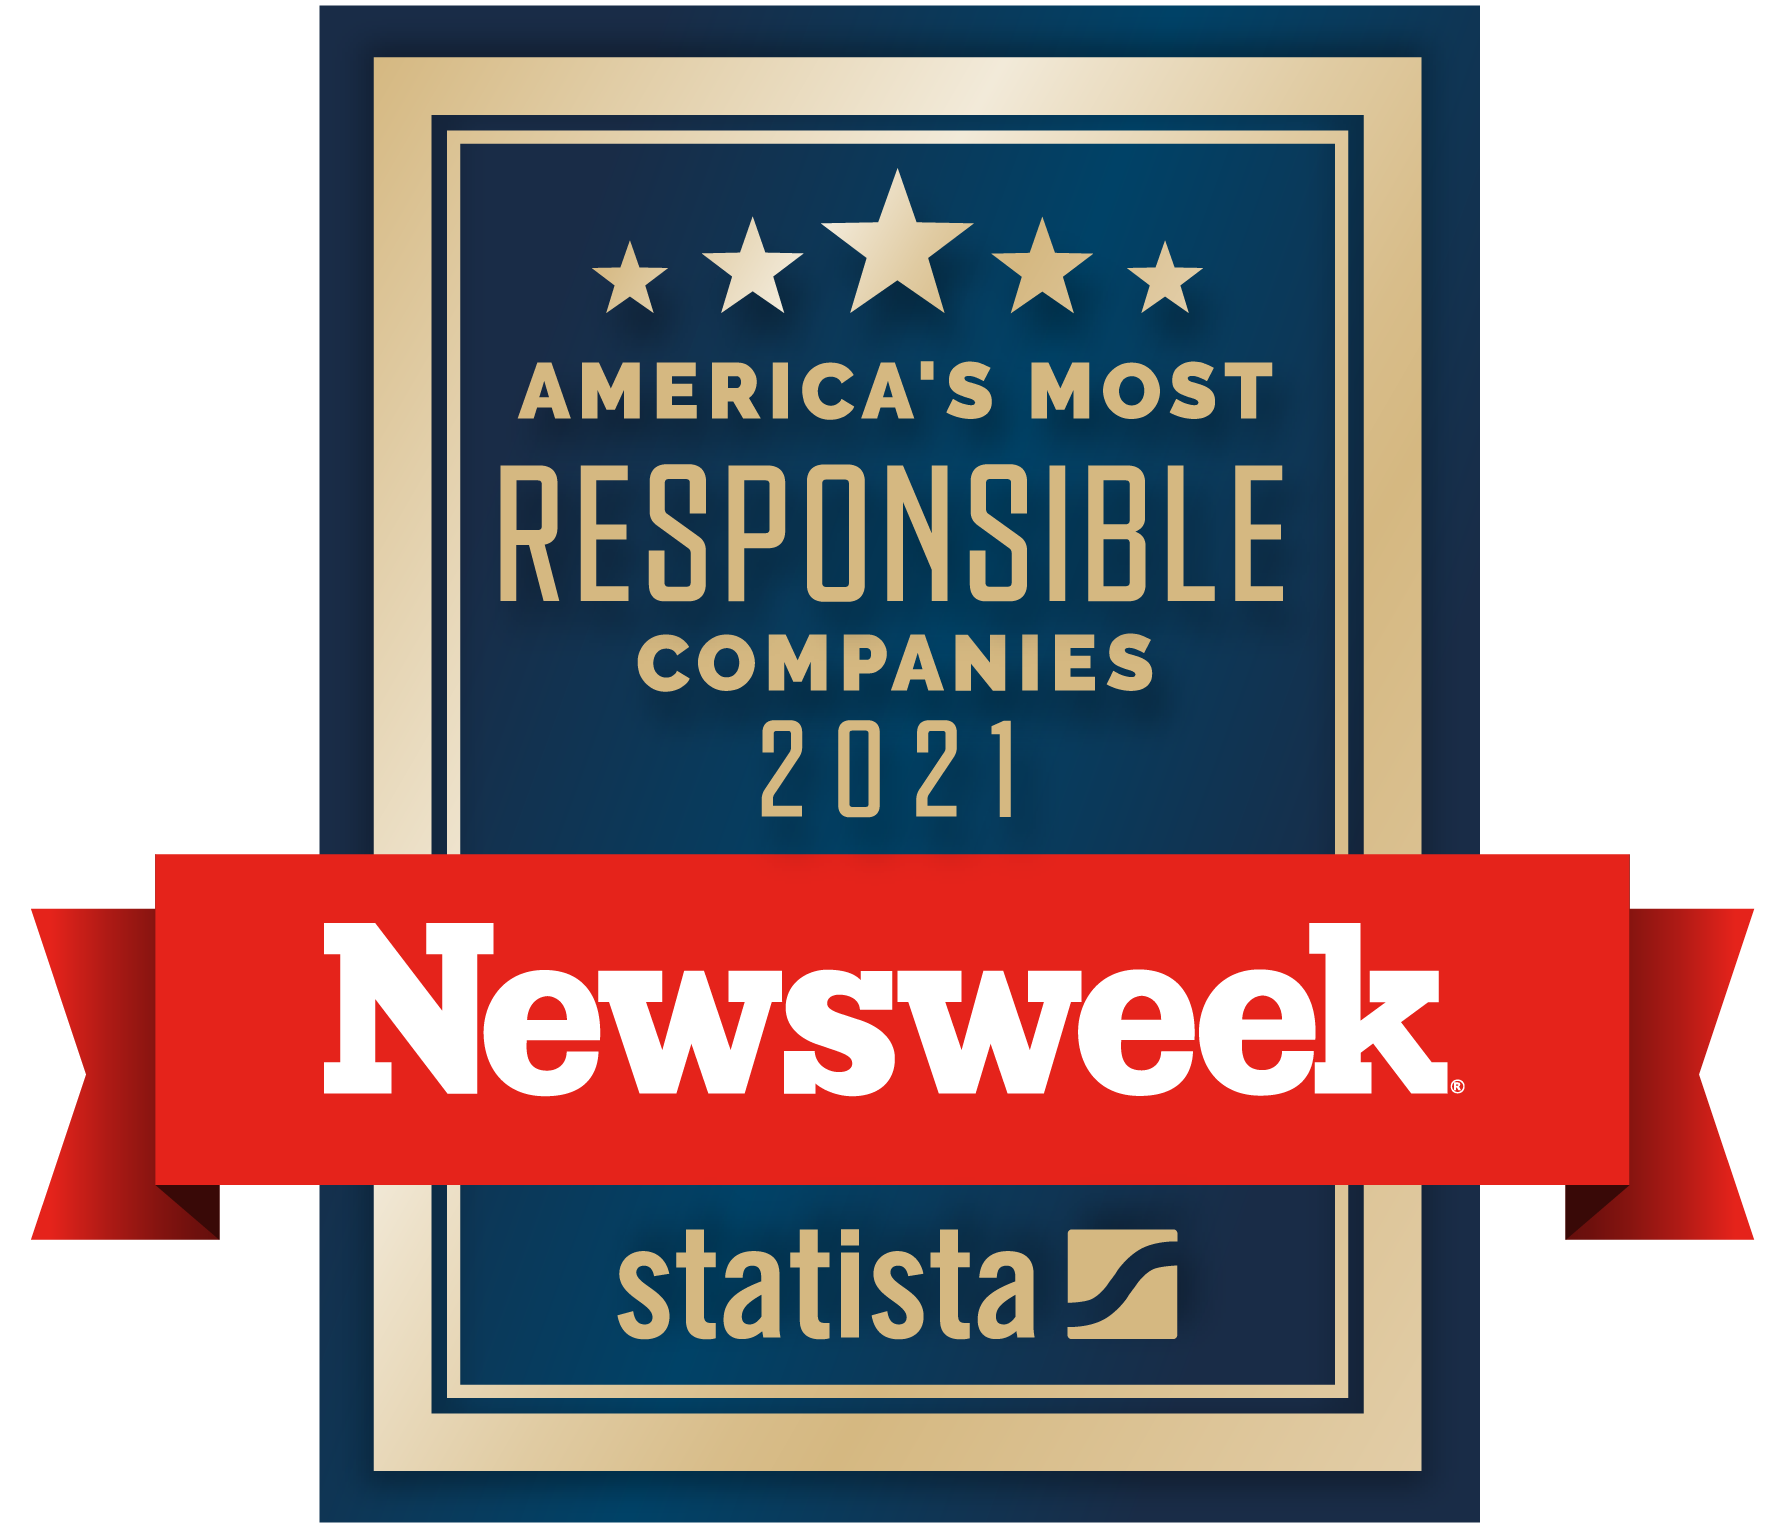 Newsweek America's Most Responsible Companies 2021